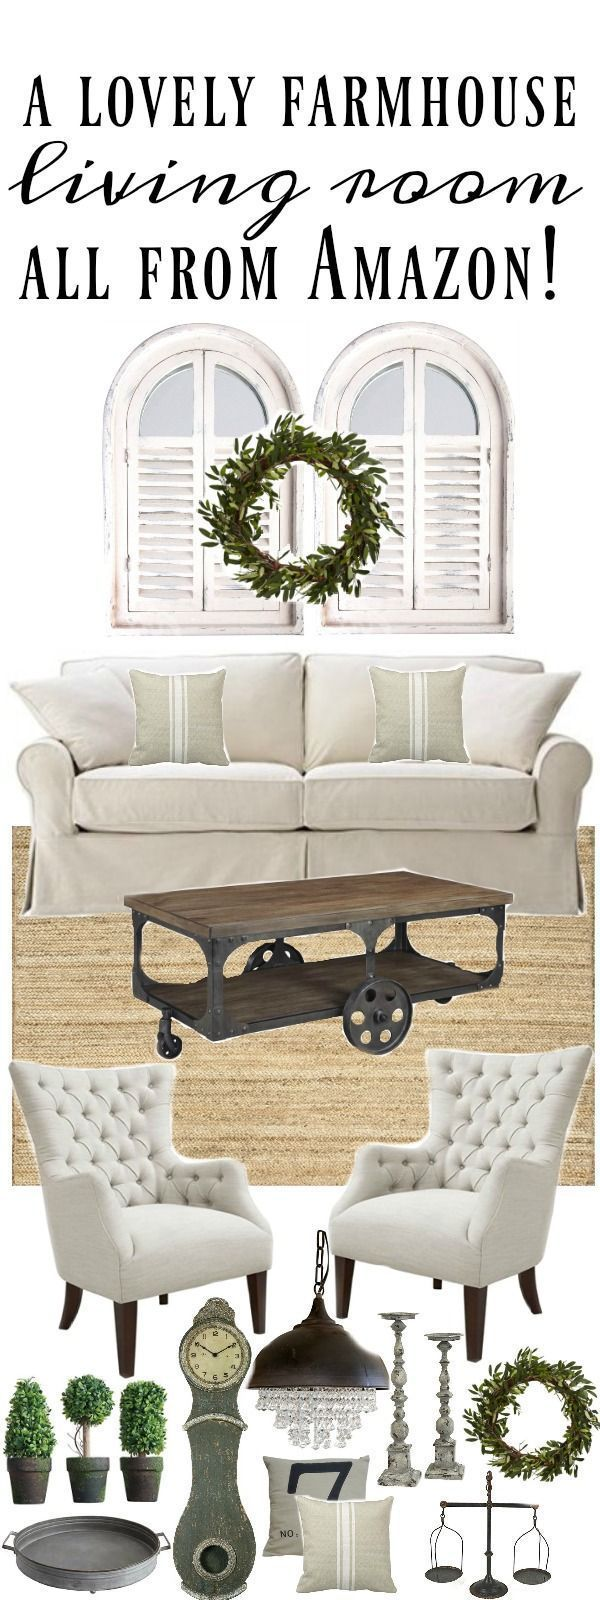 Farmhouse Living Room All From Amazon Home decor